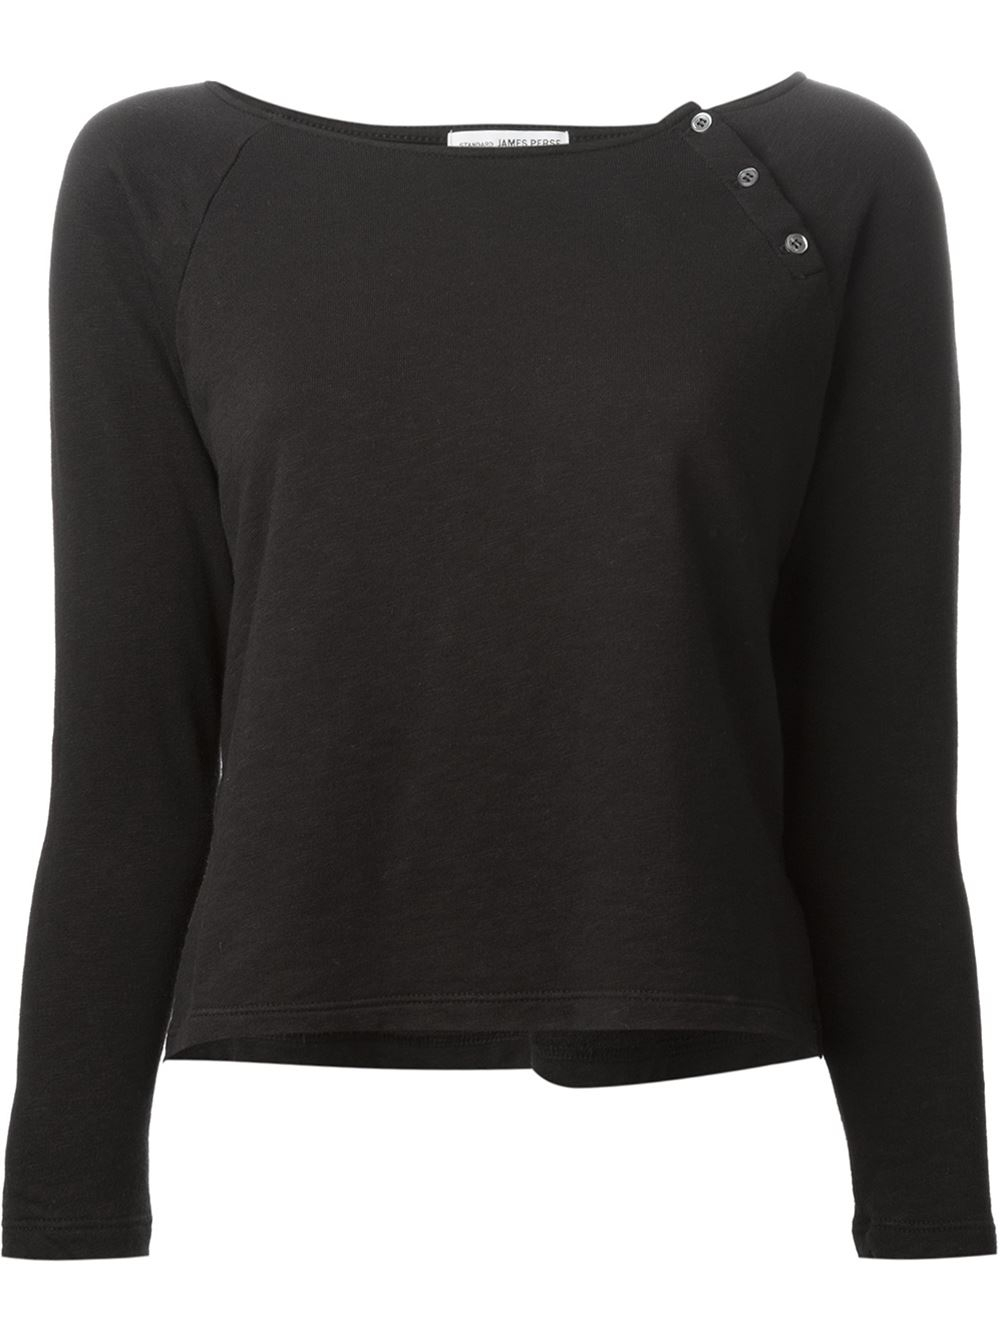 James perse black button detail longsleeved t shirt lyst for James perse t shirts sale